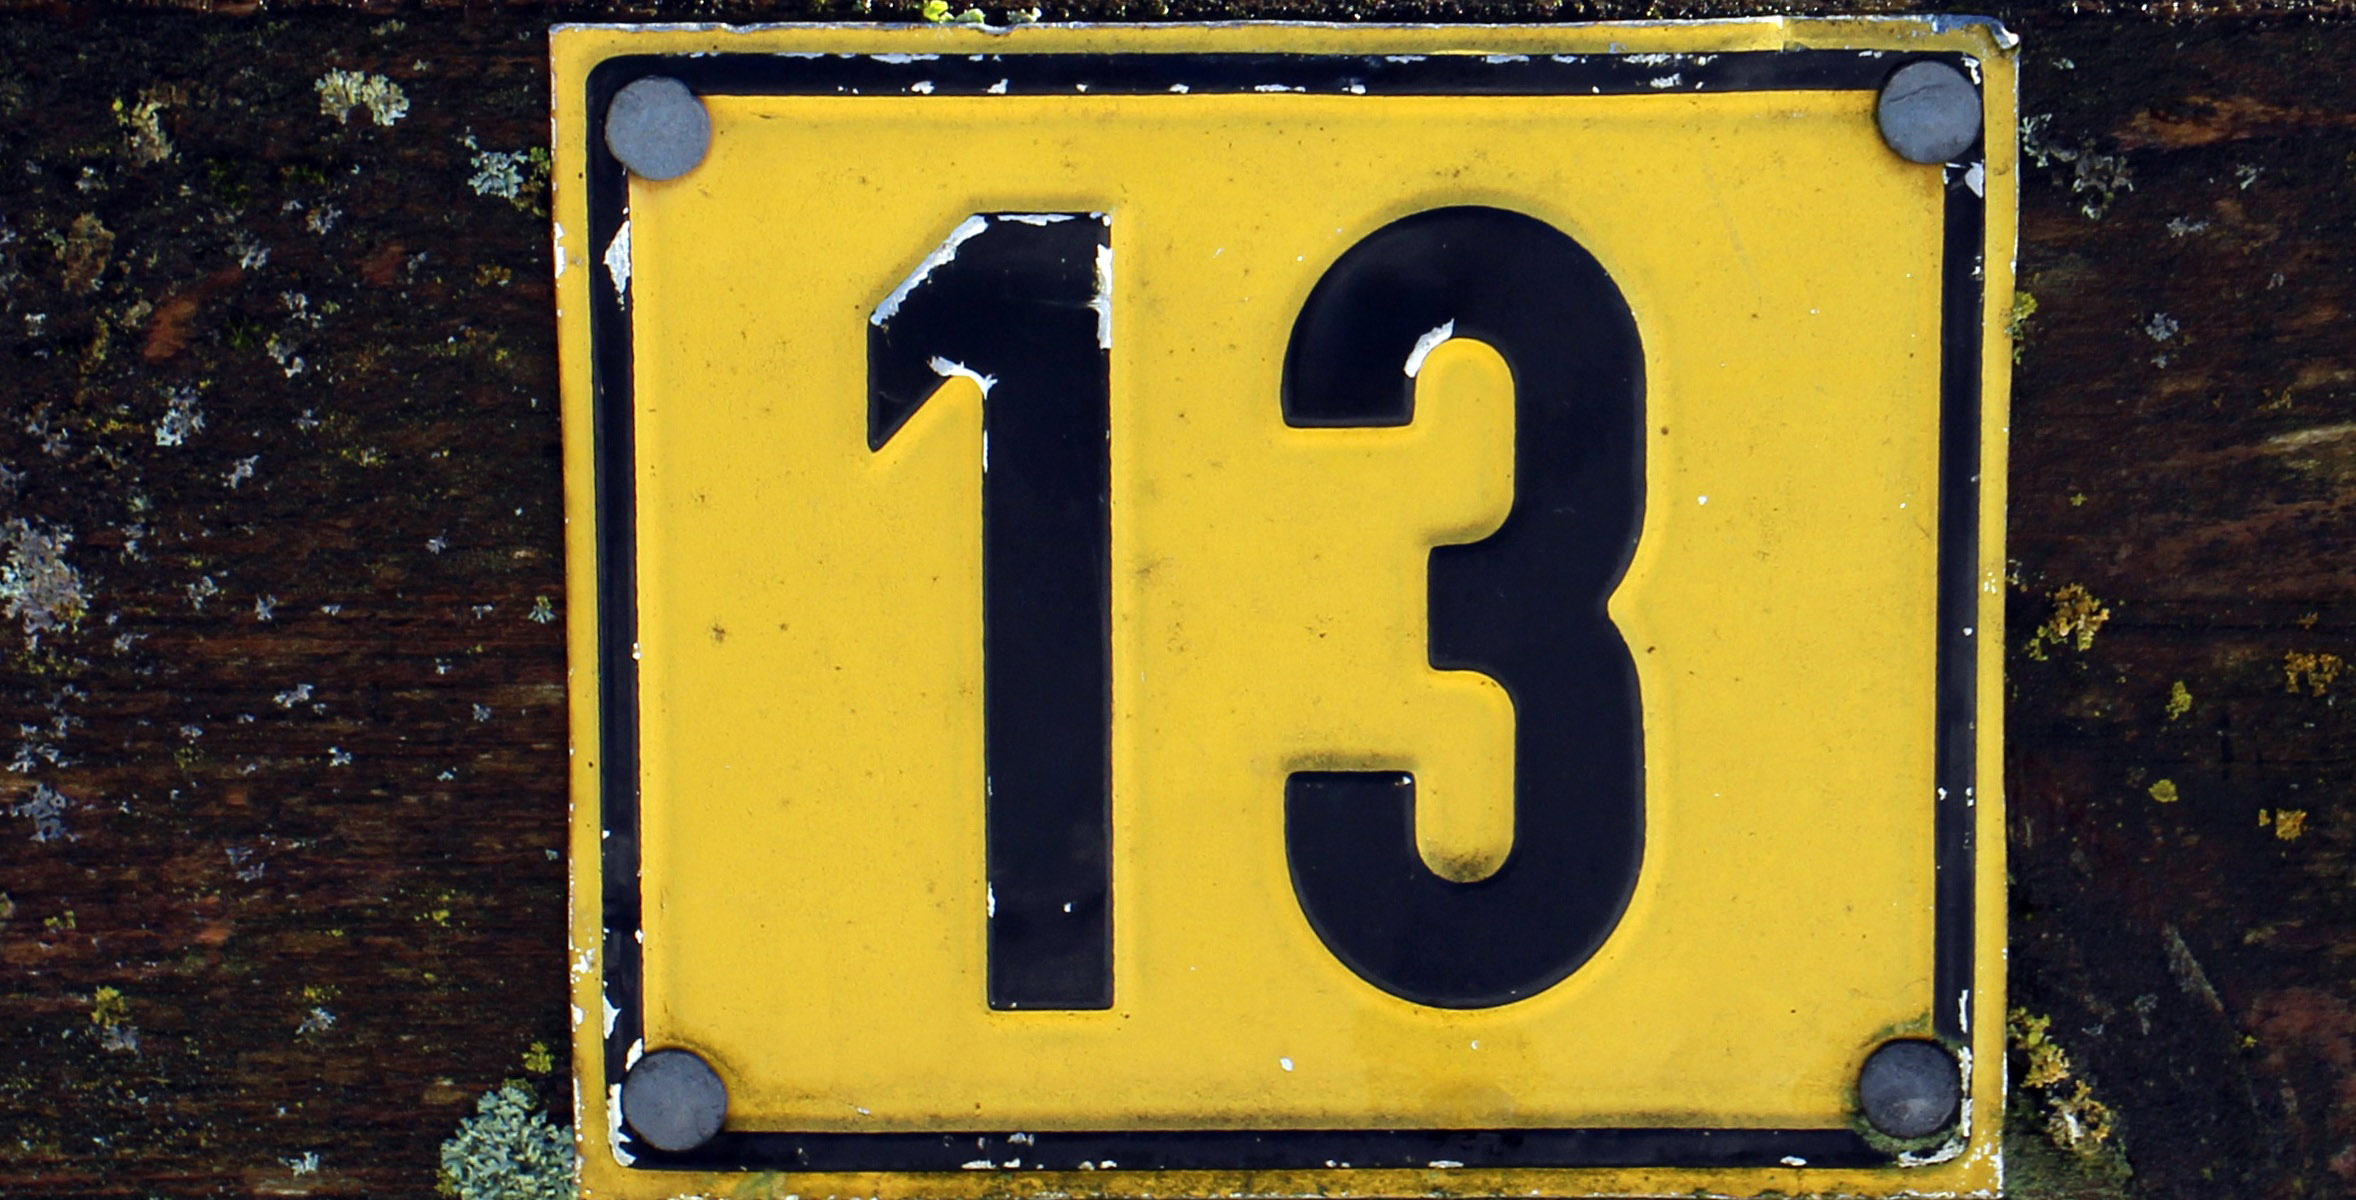 number-13-on-a-road-sign-thirteen.jpg